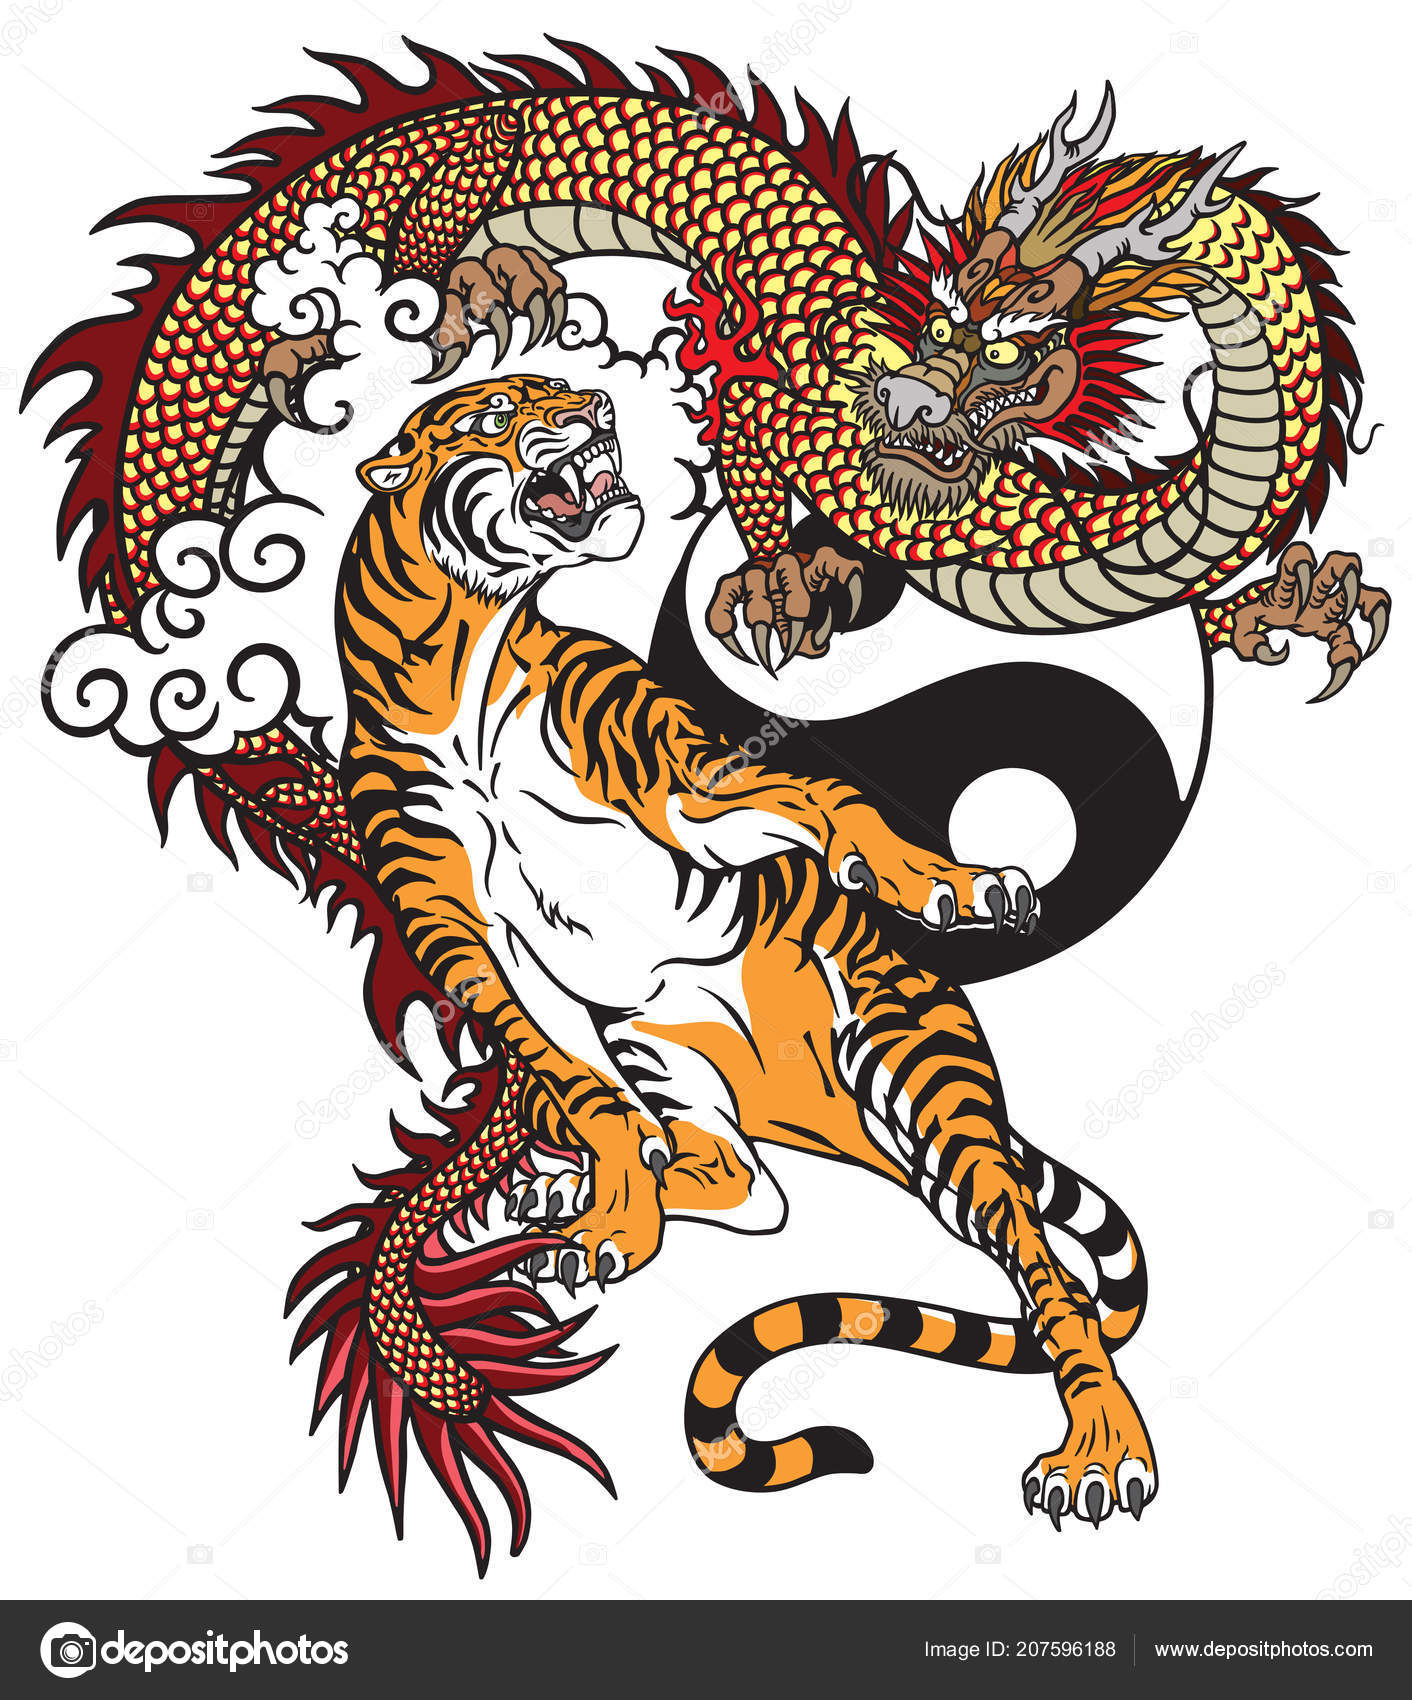 Chinese Dragon Tiger Tattoo Vector Illustration Included Yin Yang